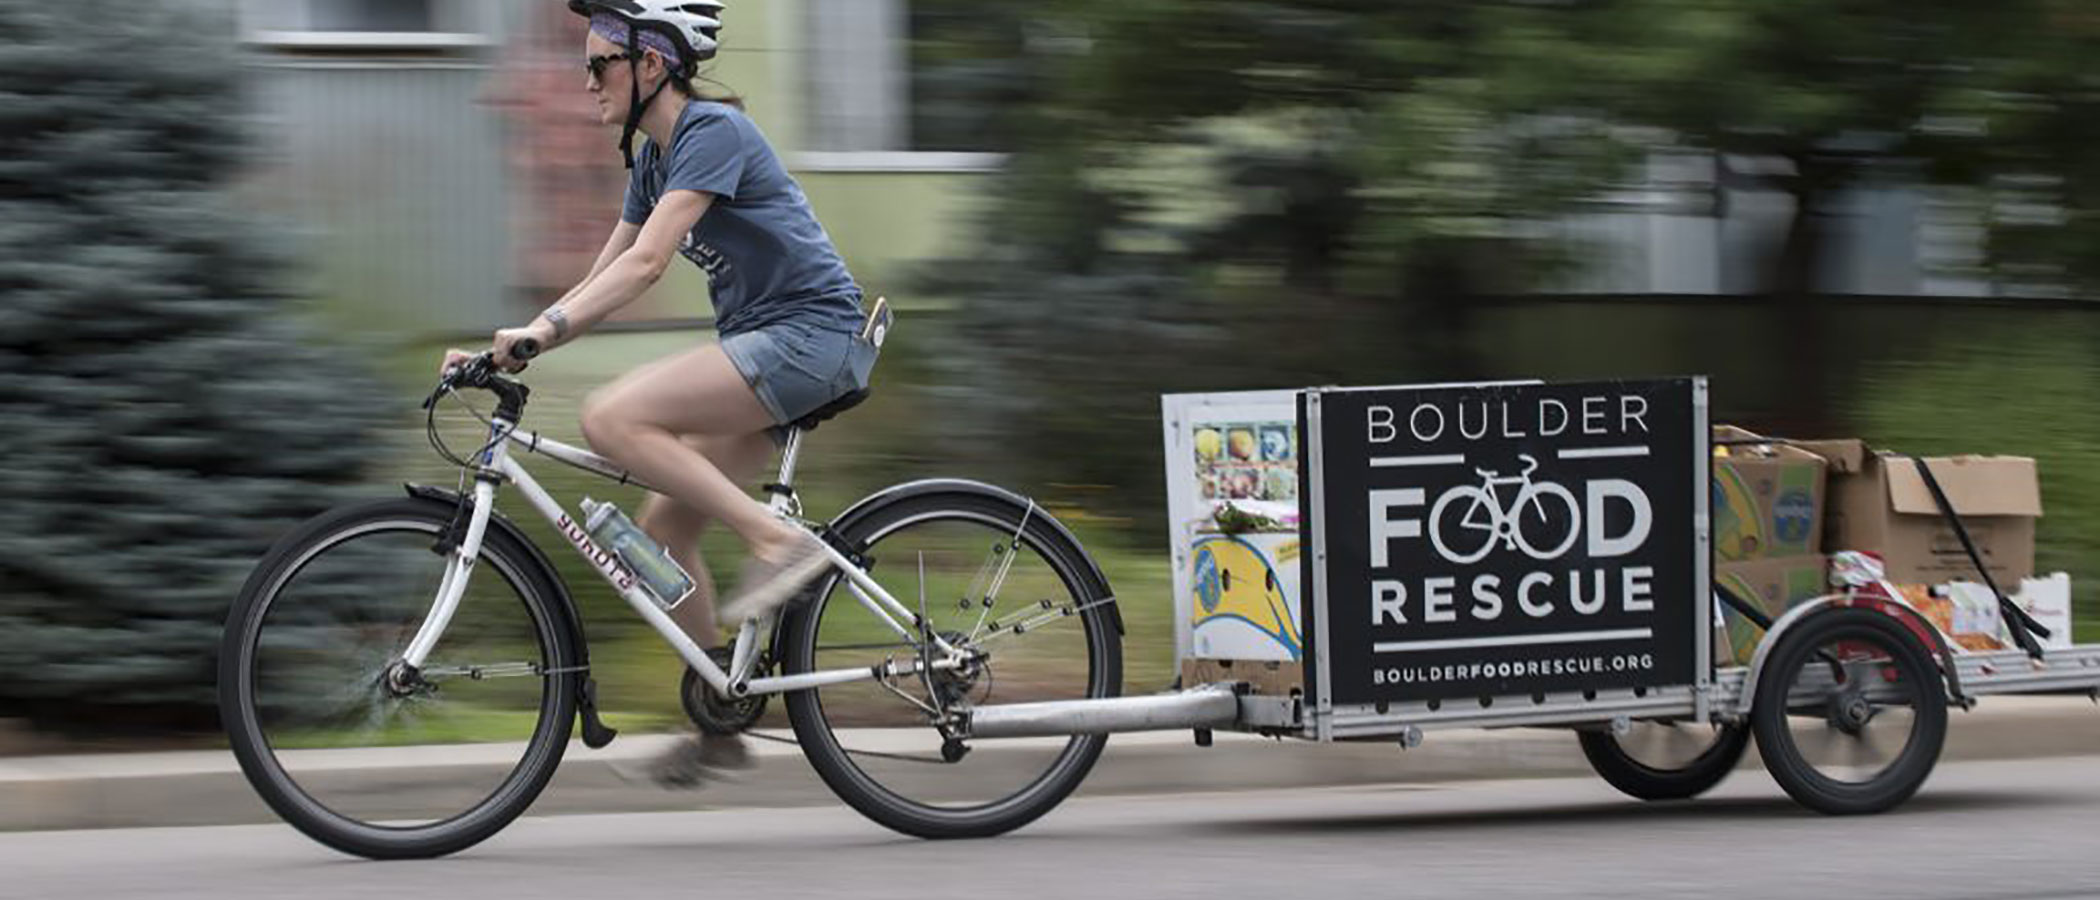 Boulder Food Rescue redistributes food to low-income communities by bicycle.